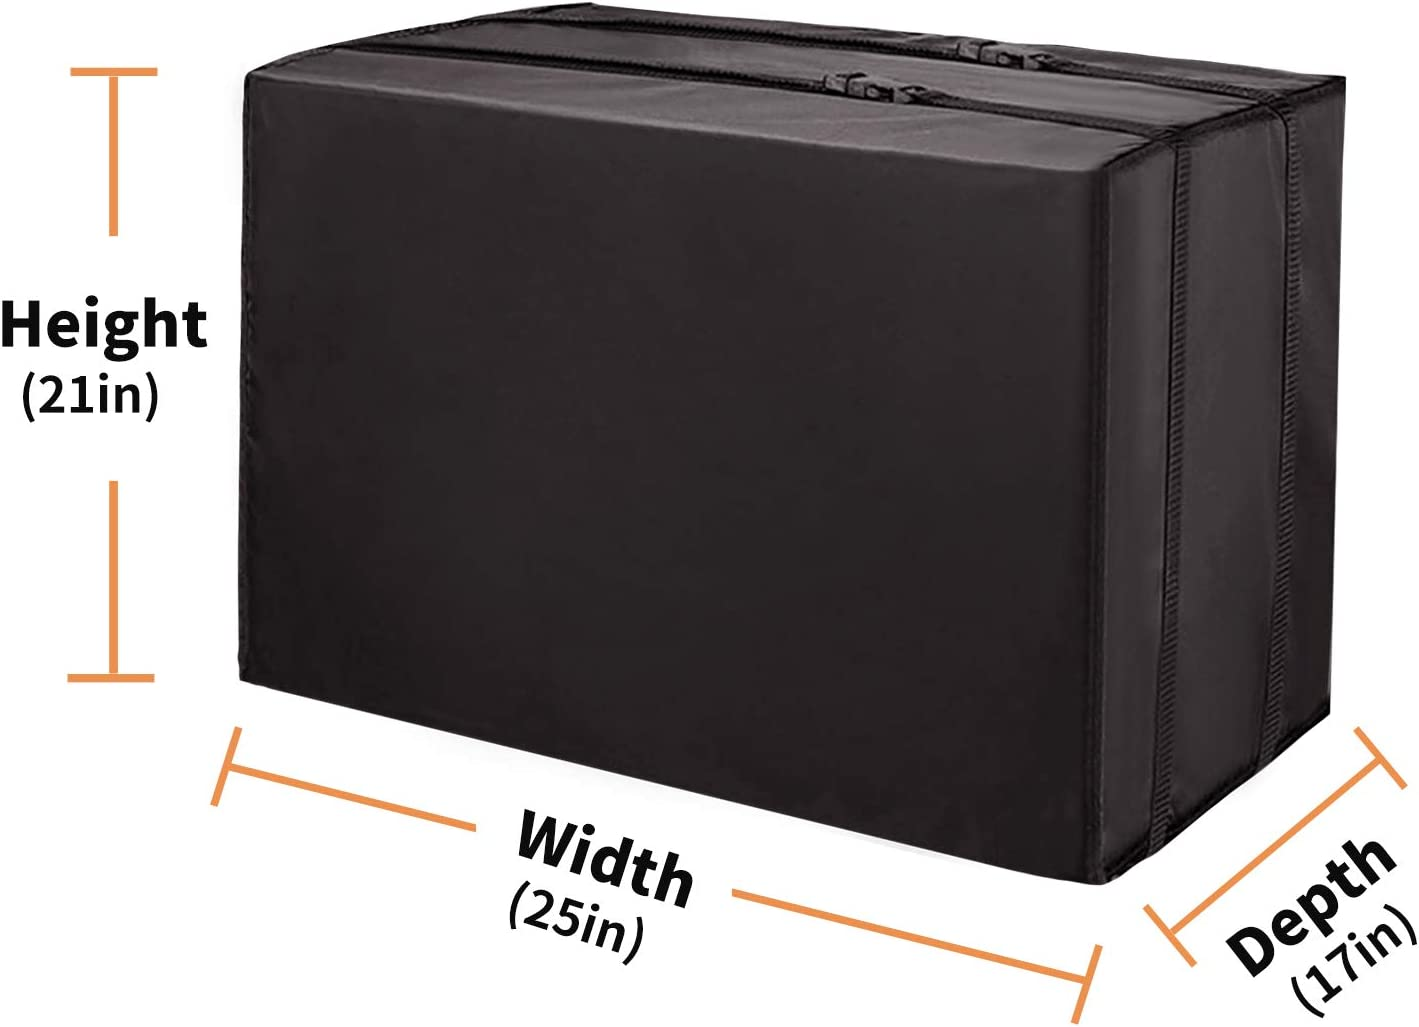 IMUER Outdoor Air Conditioner Cover for Window Units Bottom Covered with Straps Medium Black 25 x 21 x 17 inches L x H x D Dust-Proof/&Waterproof Window AC Cover for Outside,Heavy Duty Defender